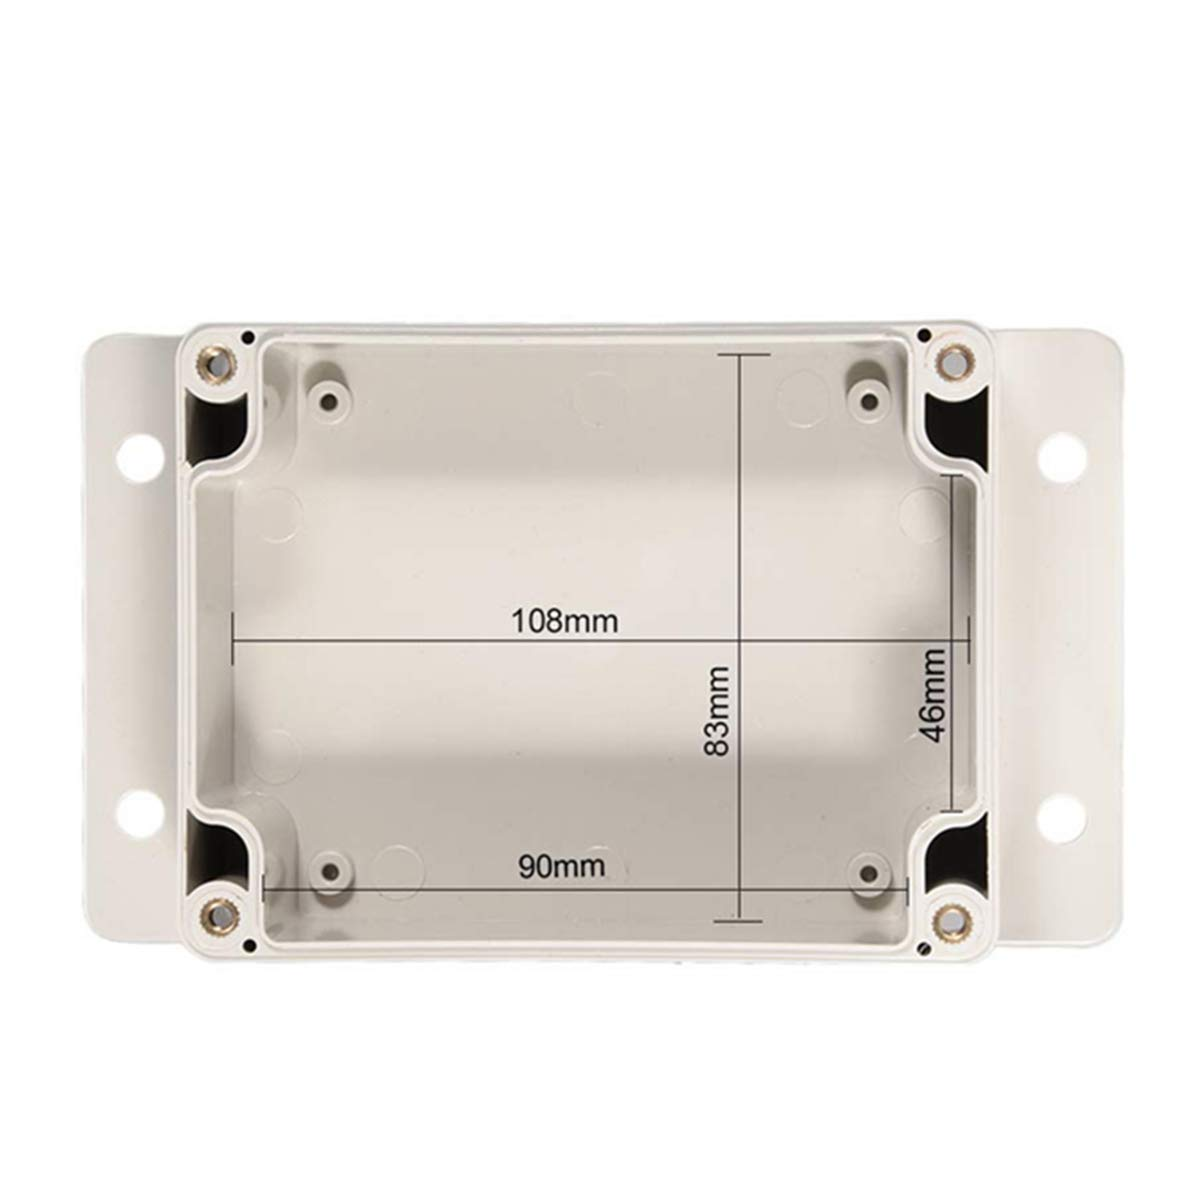 4.5x3.5x2.2 WEIJ 115mmx90mmx56mm ABS Waterproof Junction Box Universal Project Enclosure w PC Transparent Cover